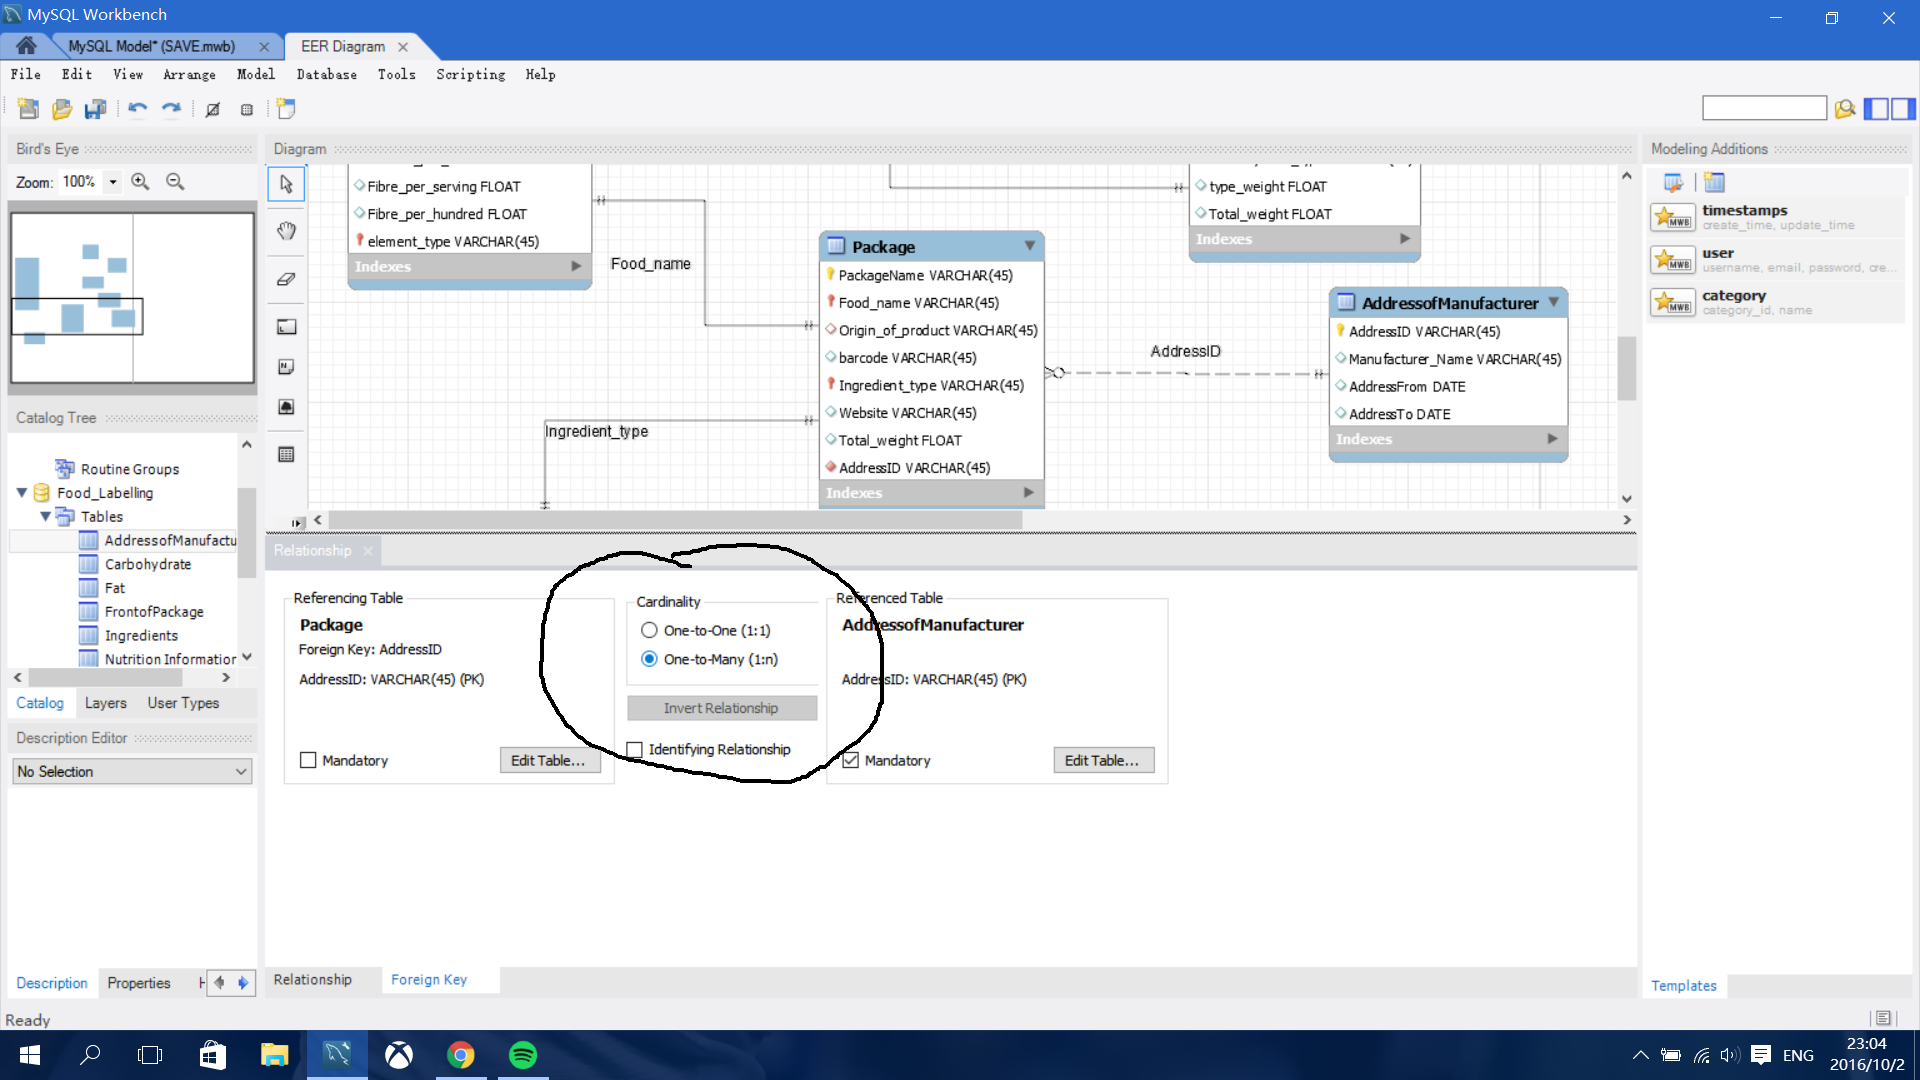 My Sql Workbench Creating Many To Many Relationship In Eer